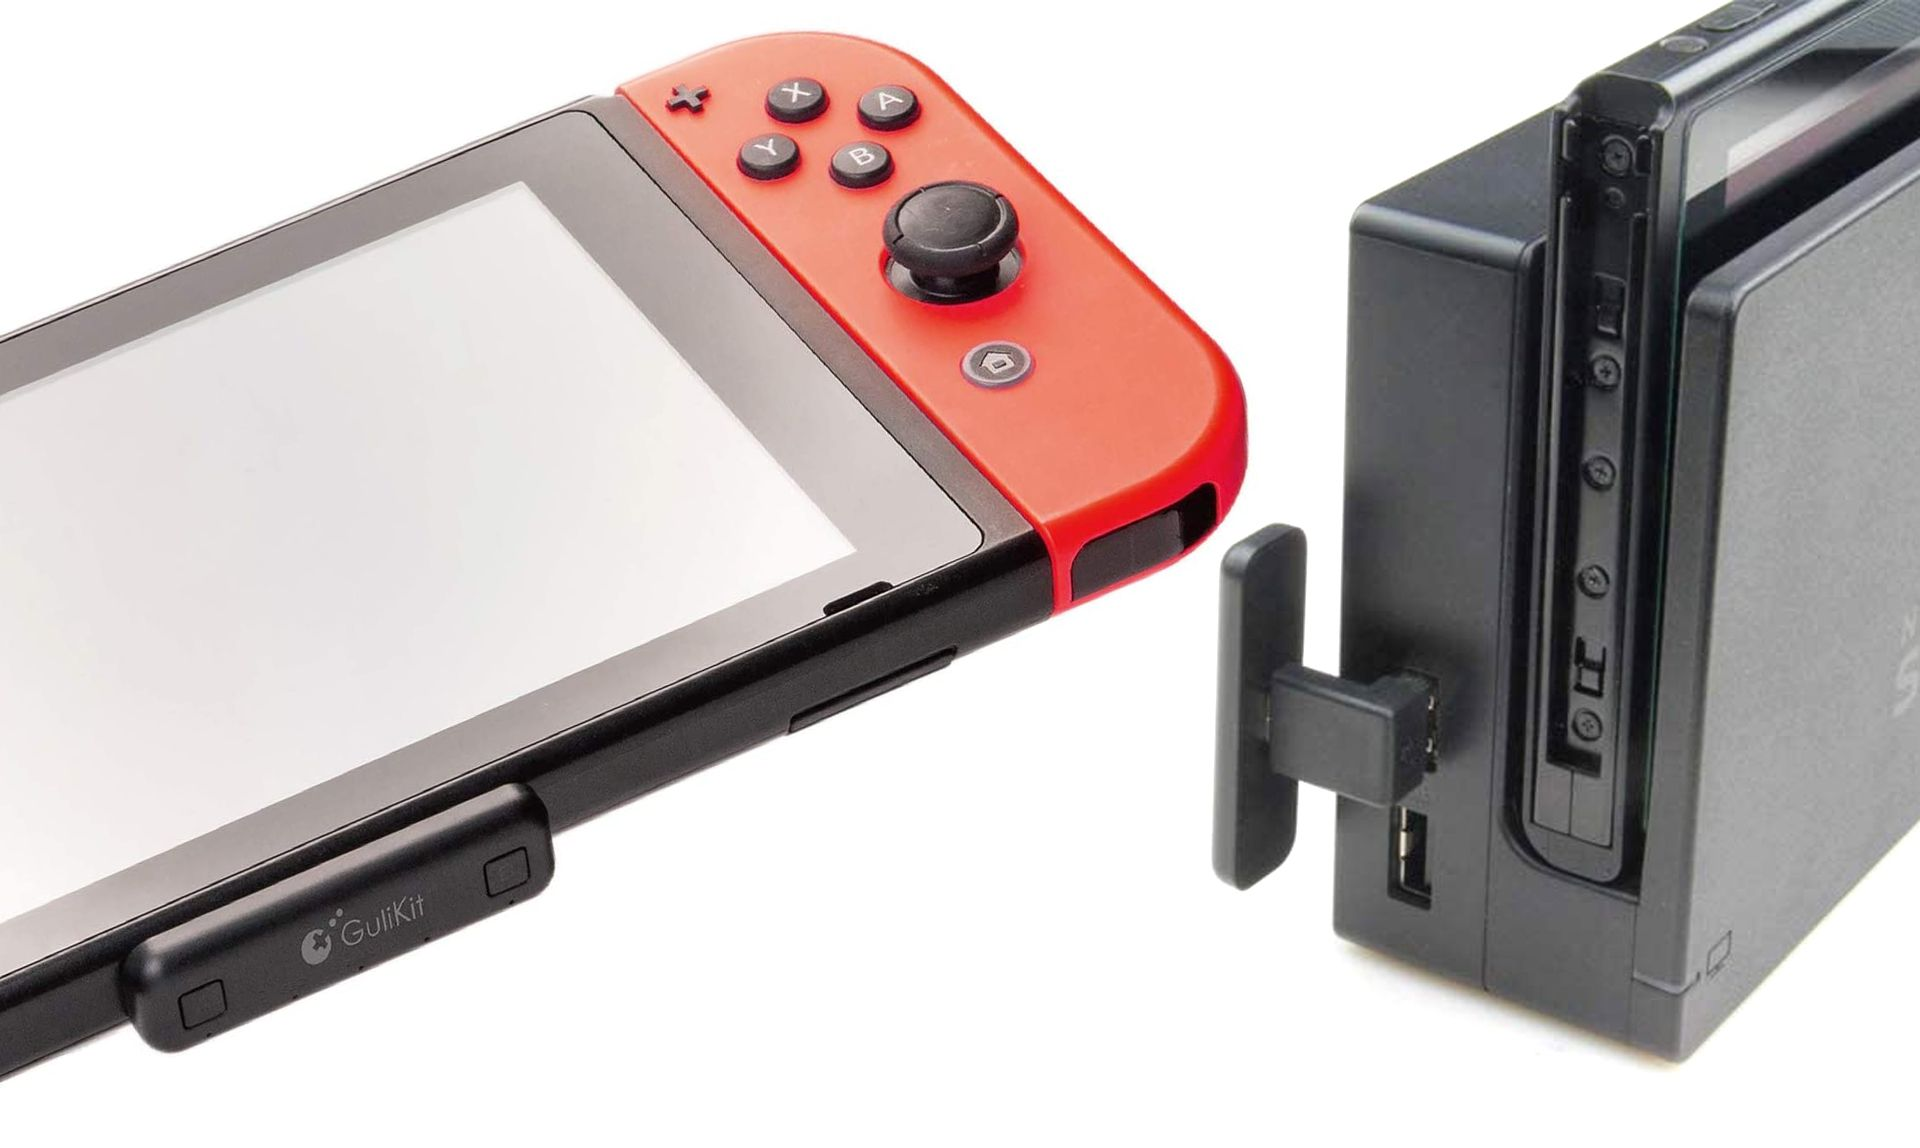 GuliKit Bluetooth Adapter connected to a Nintendo Switch and Dock.